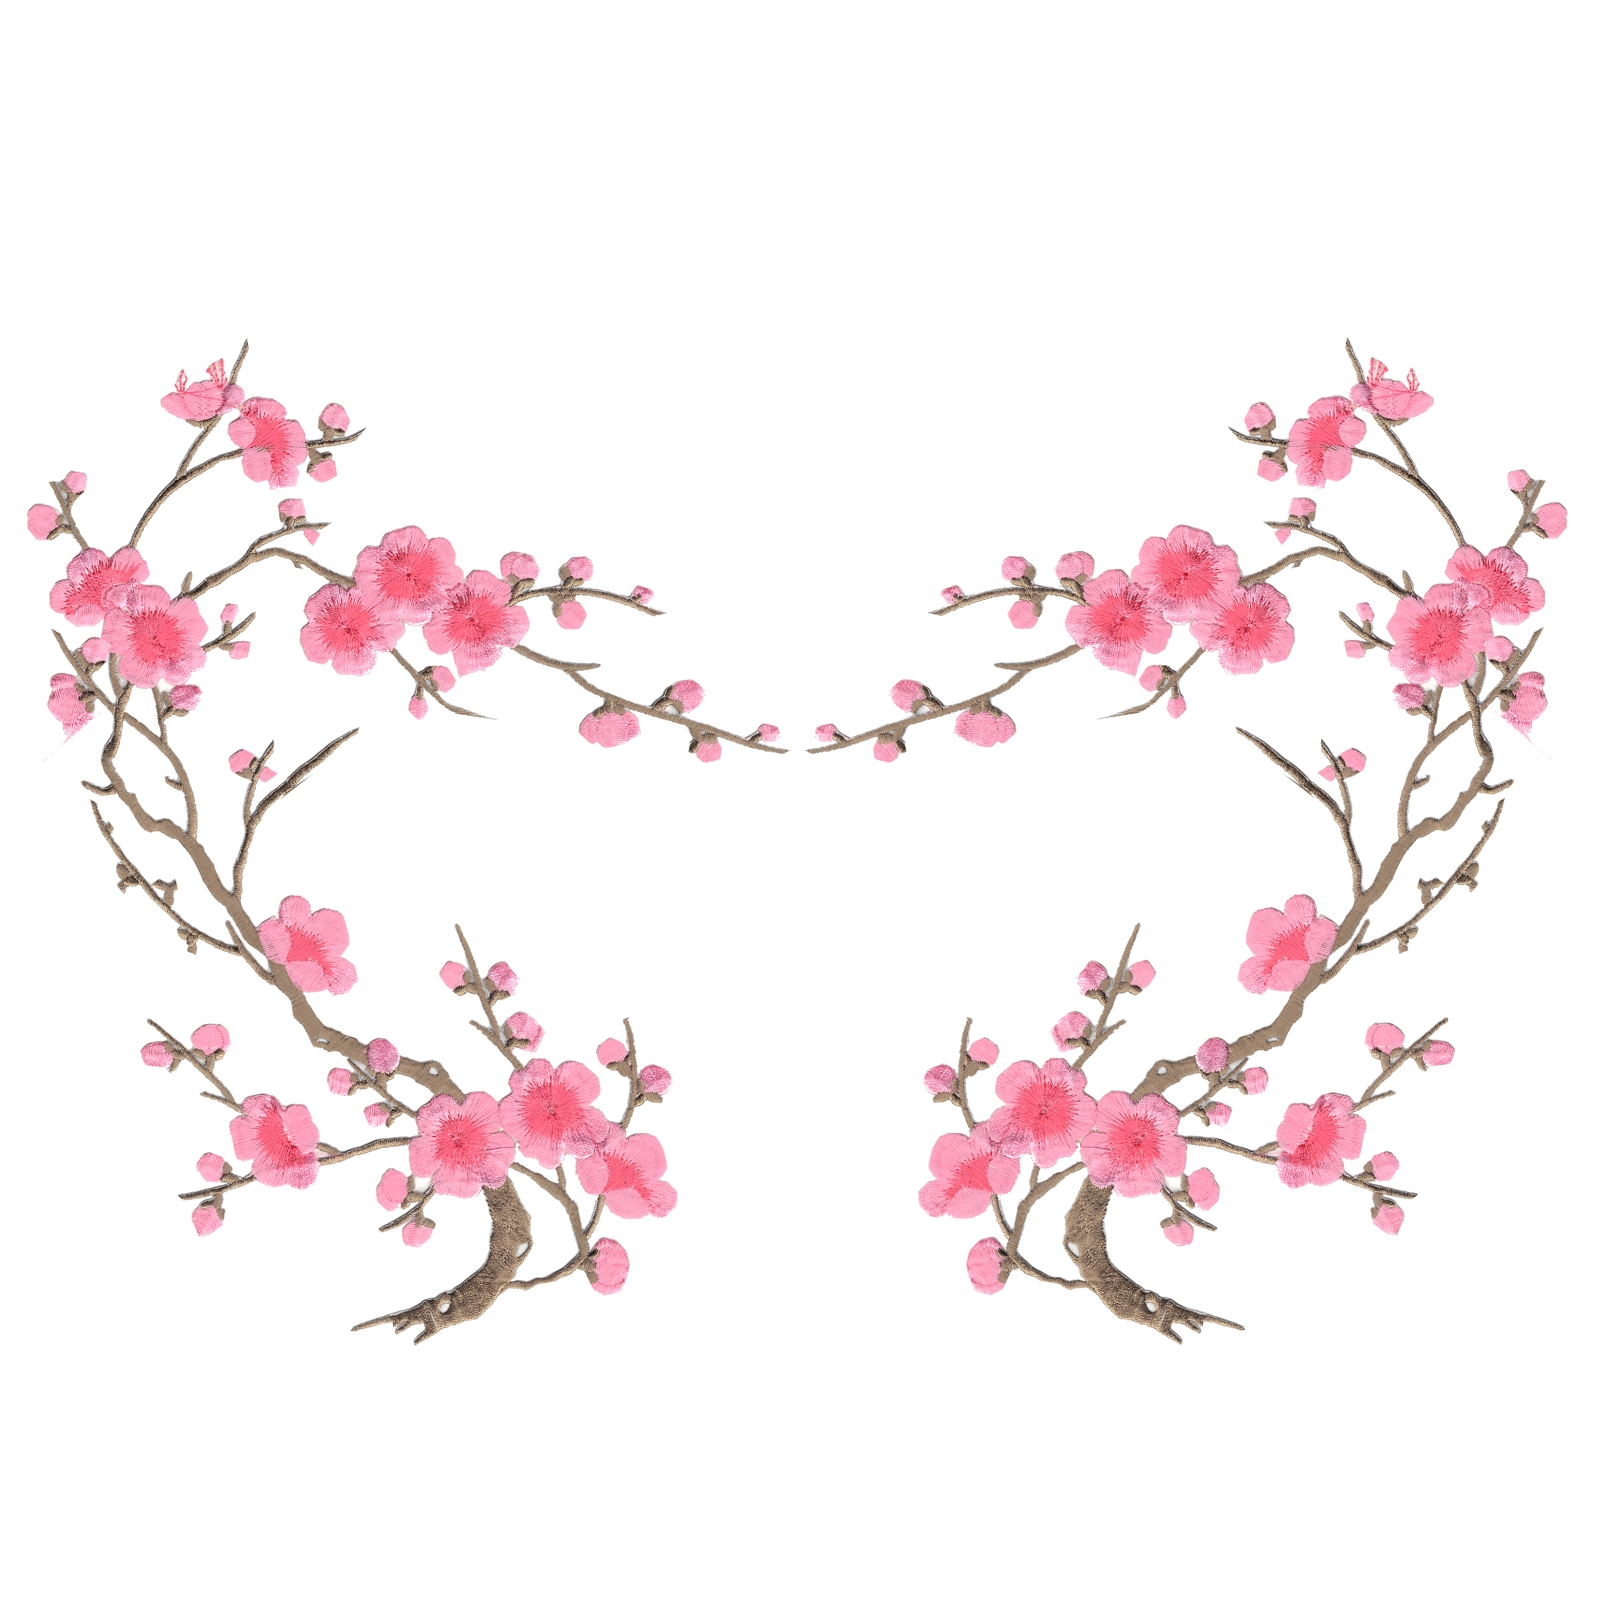 Pink Cherry Blossom Flowers Set of Two Embroidered Iron on Patches